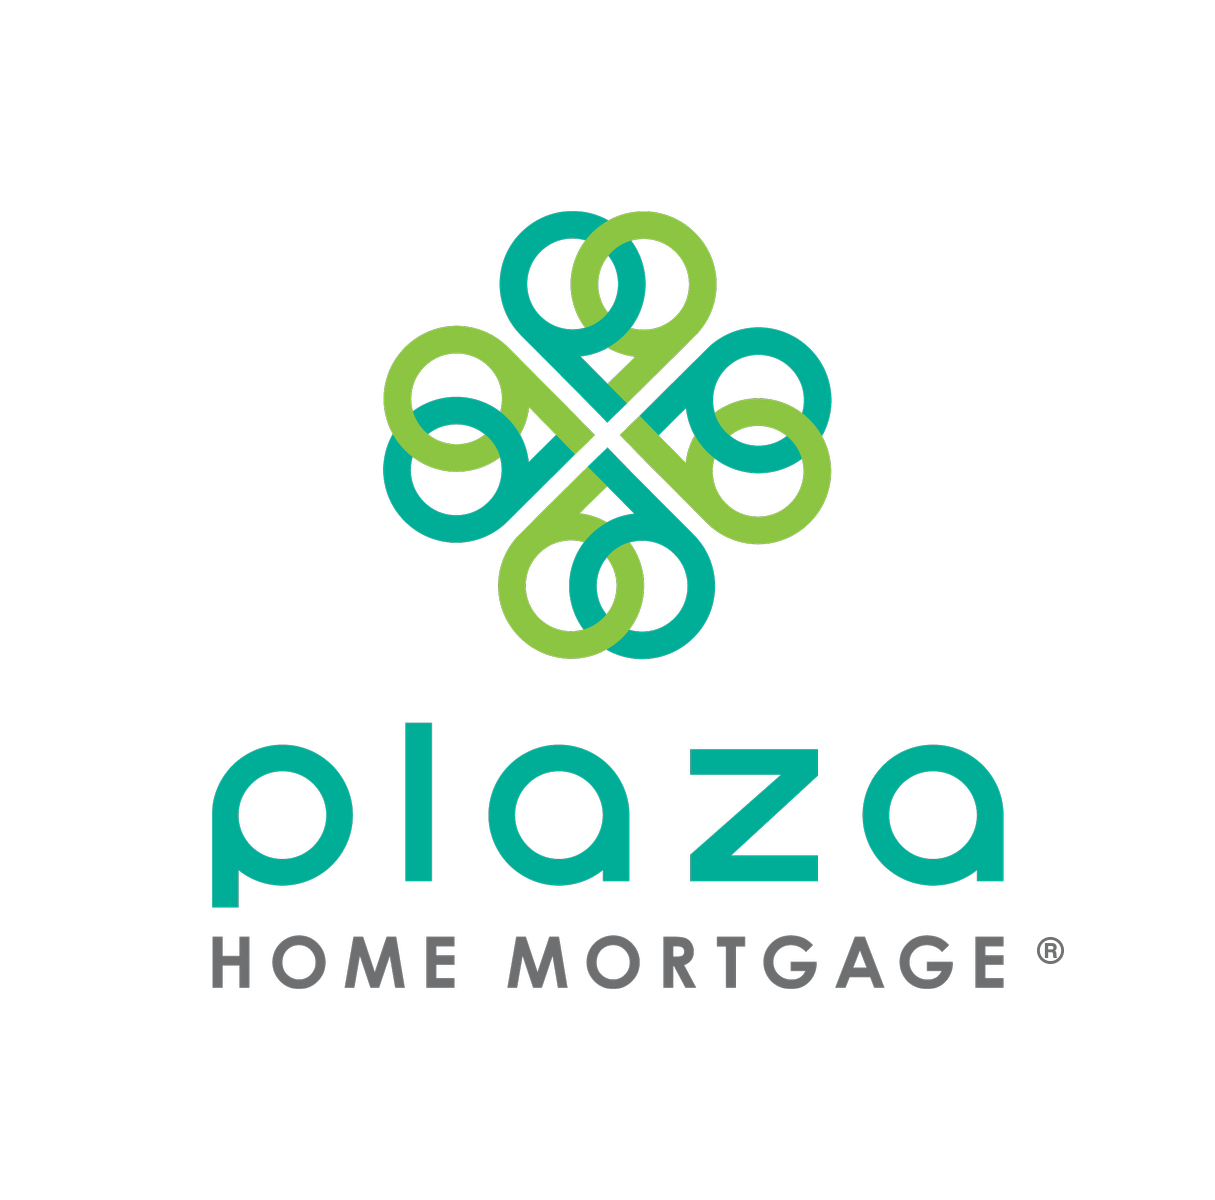 Plaza Home Mortgage vertical logo